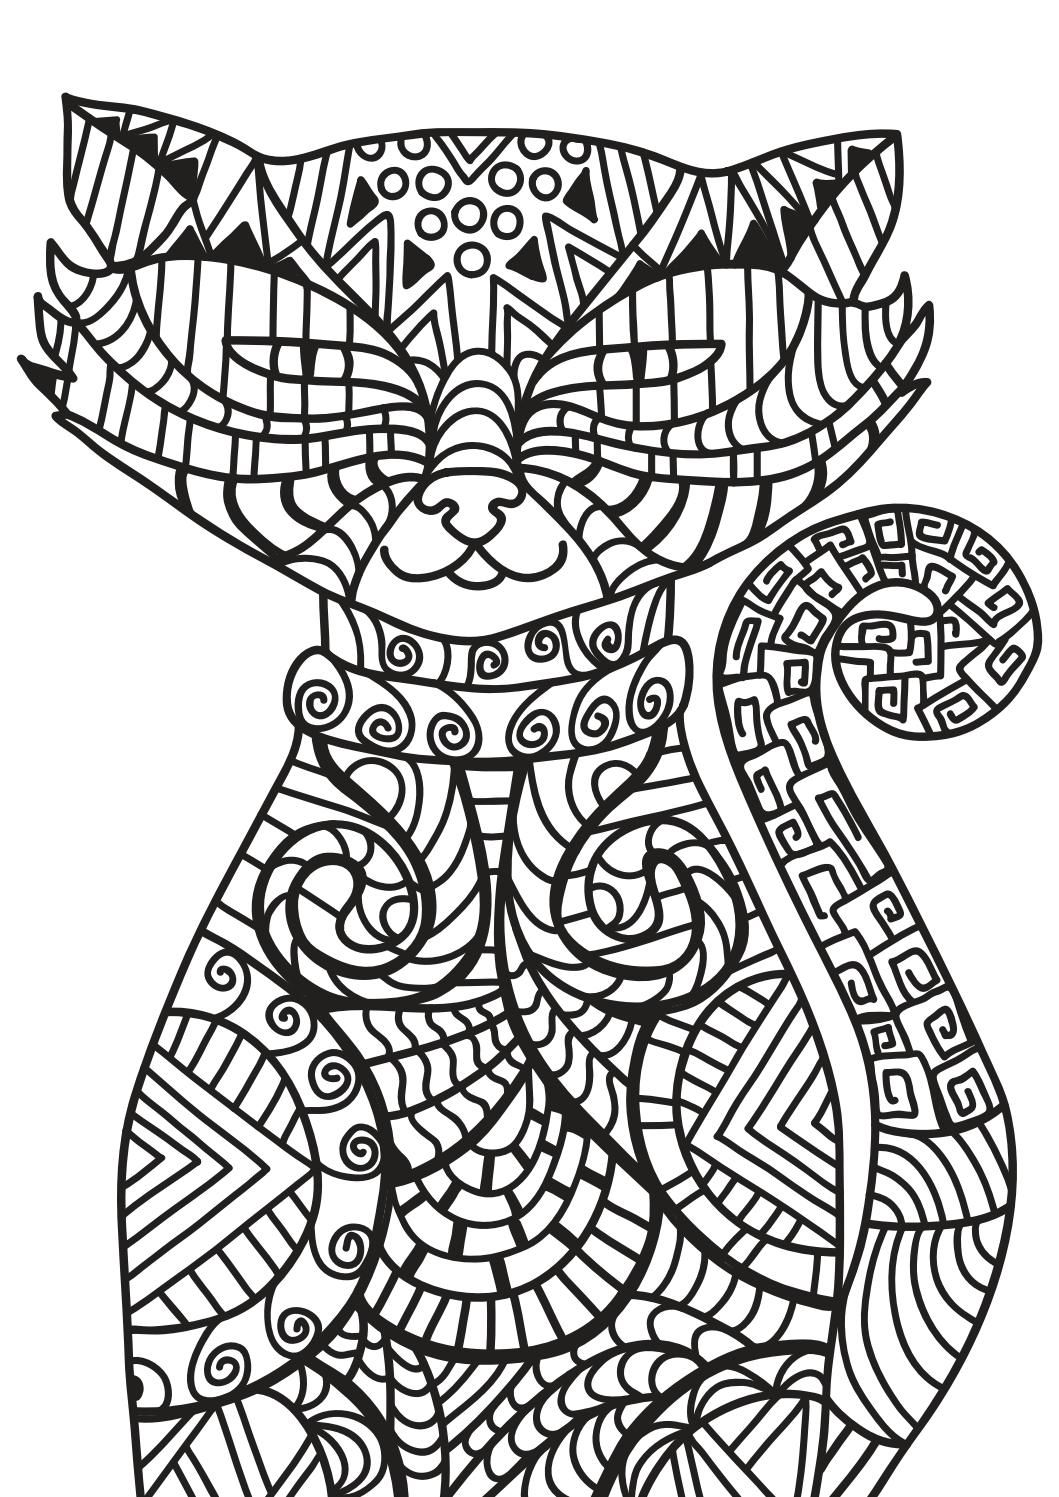 Cat Coloring Pages For Adults Printable Coloring Book Cat